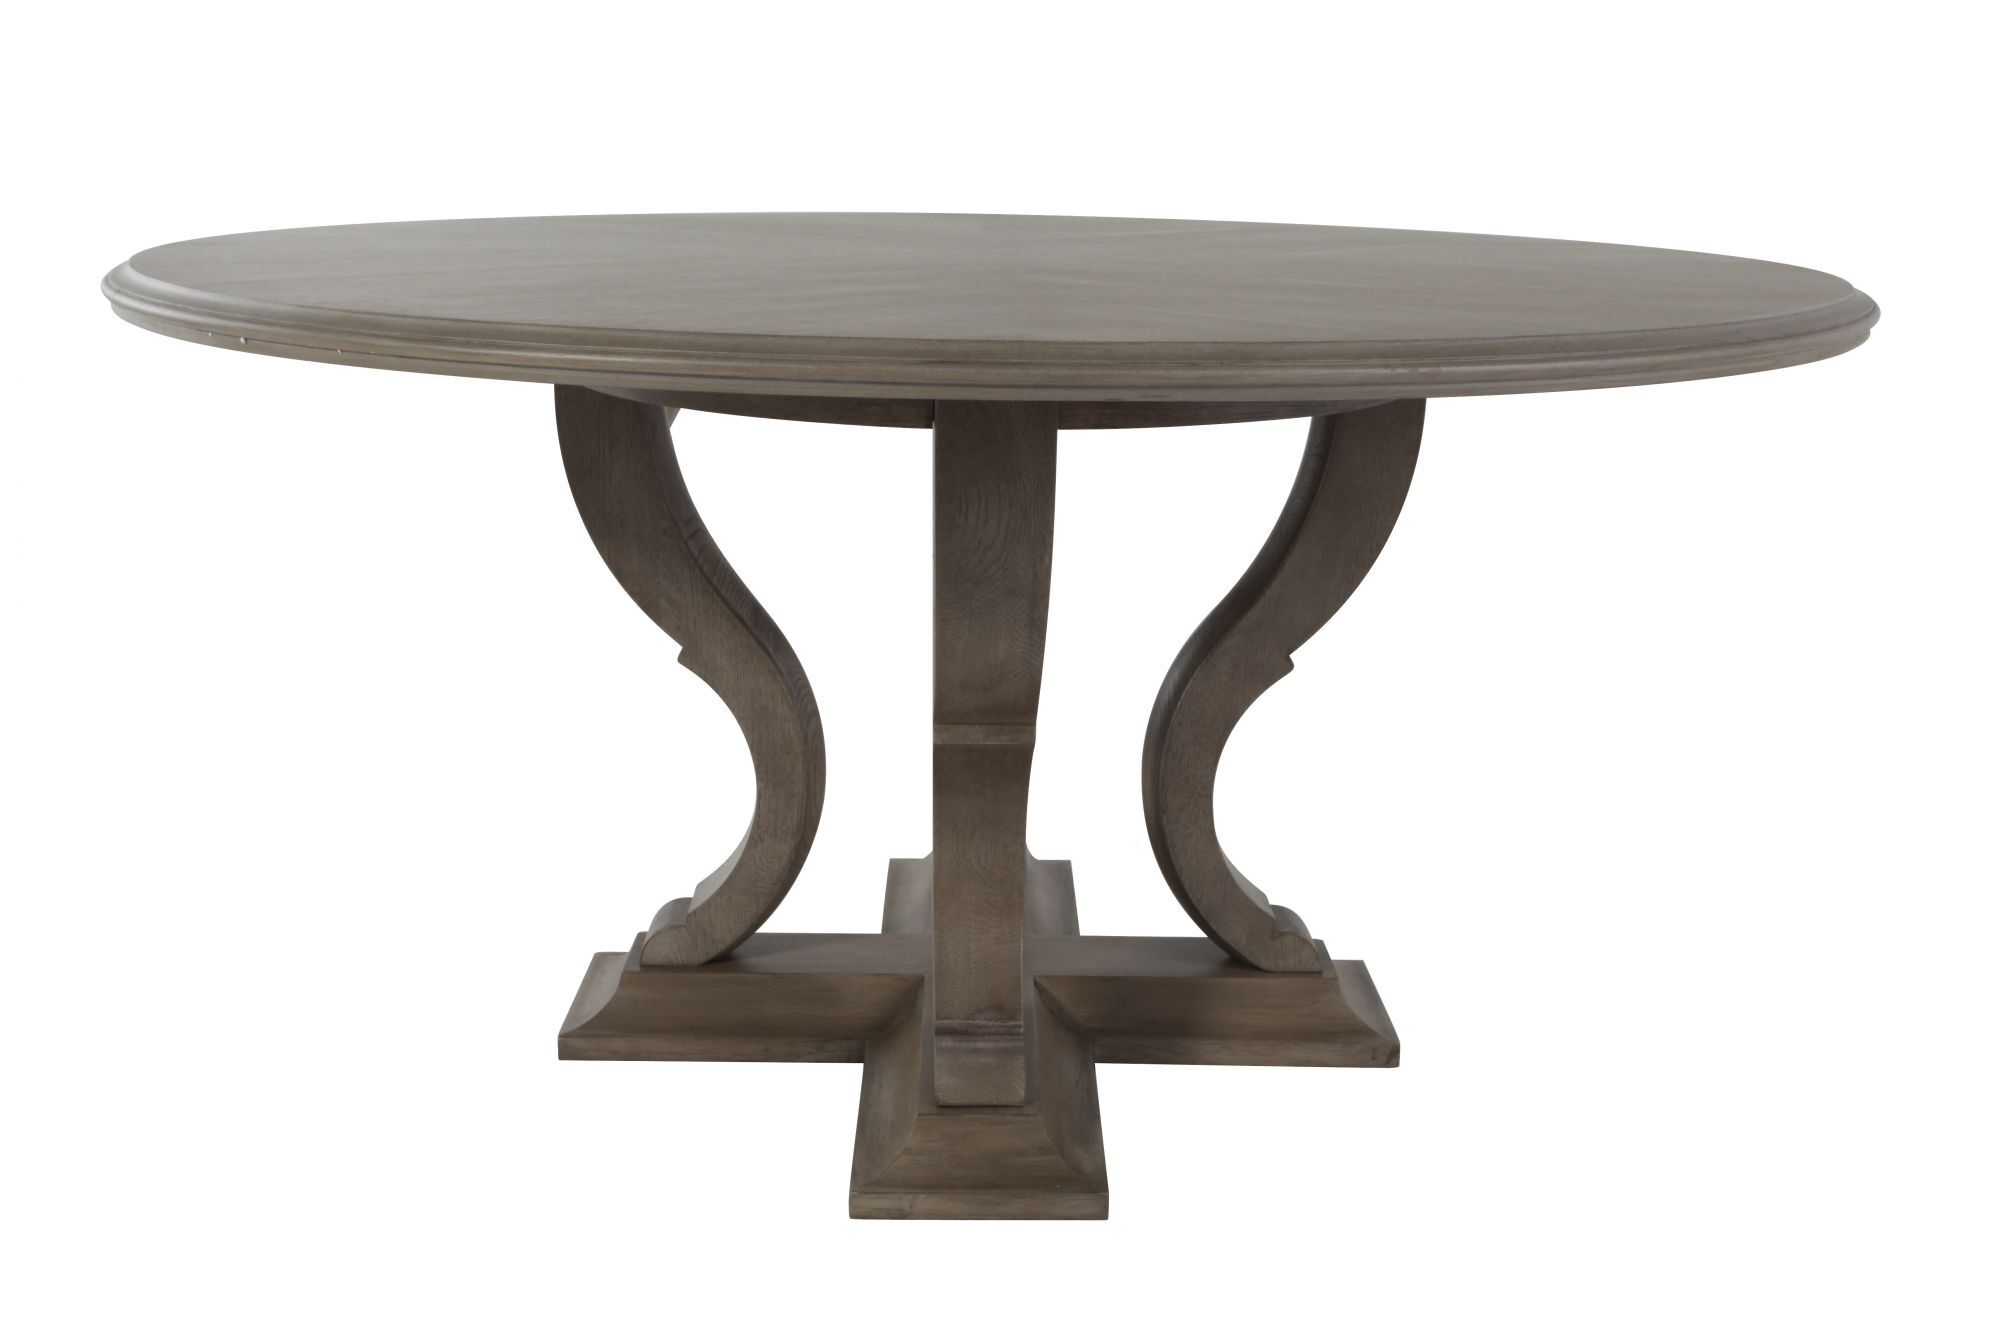 Marvelous Images Refined Romantic Luxury 60u0026quot; Round Dining Table In Gray Cashmere  Refined Romantic Luxury 60u0026quot; Round Dining Table In Gray Cashmere